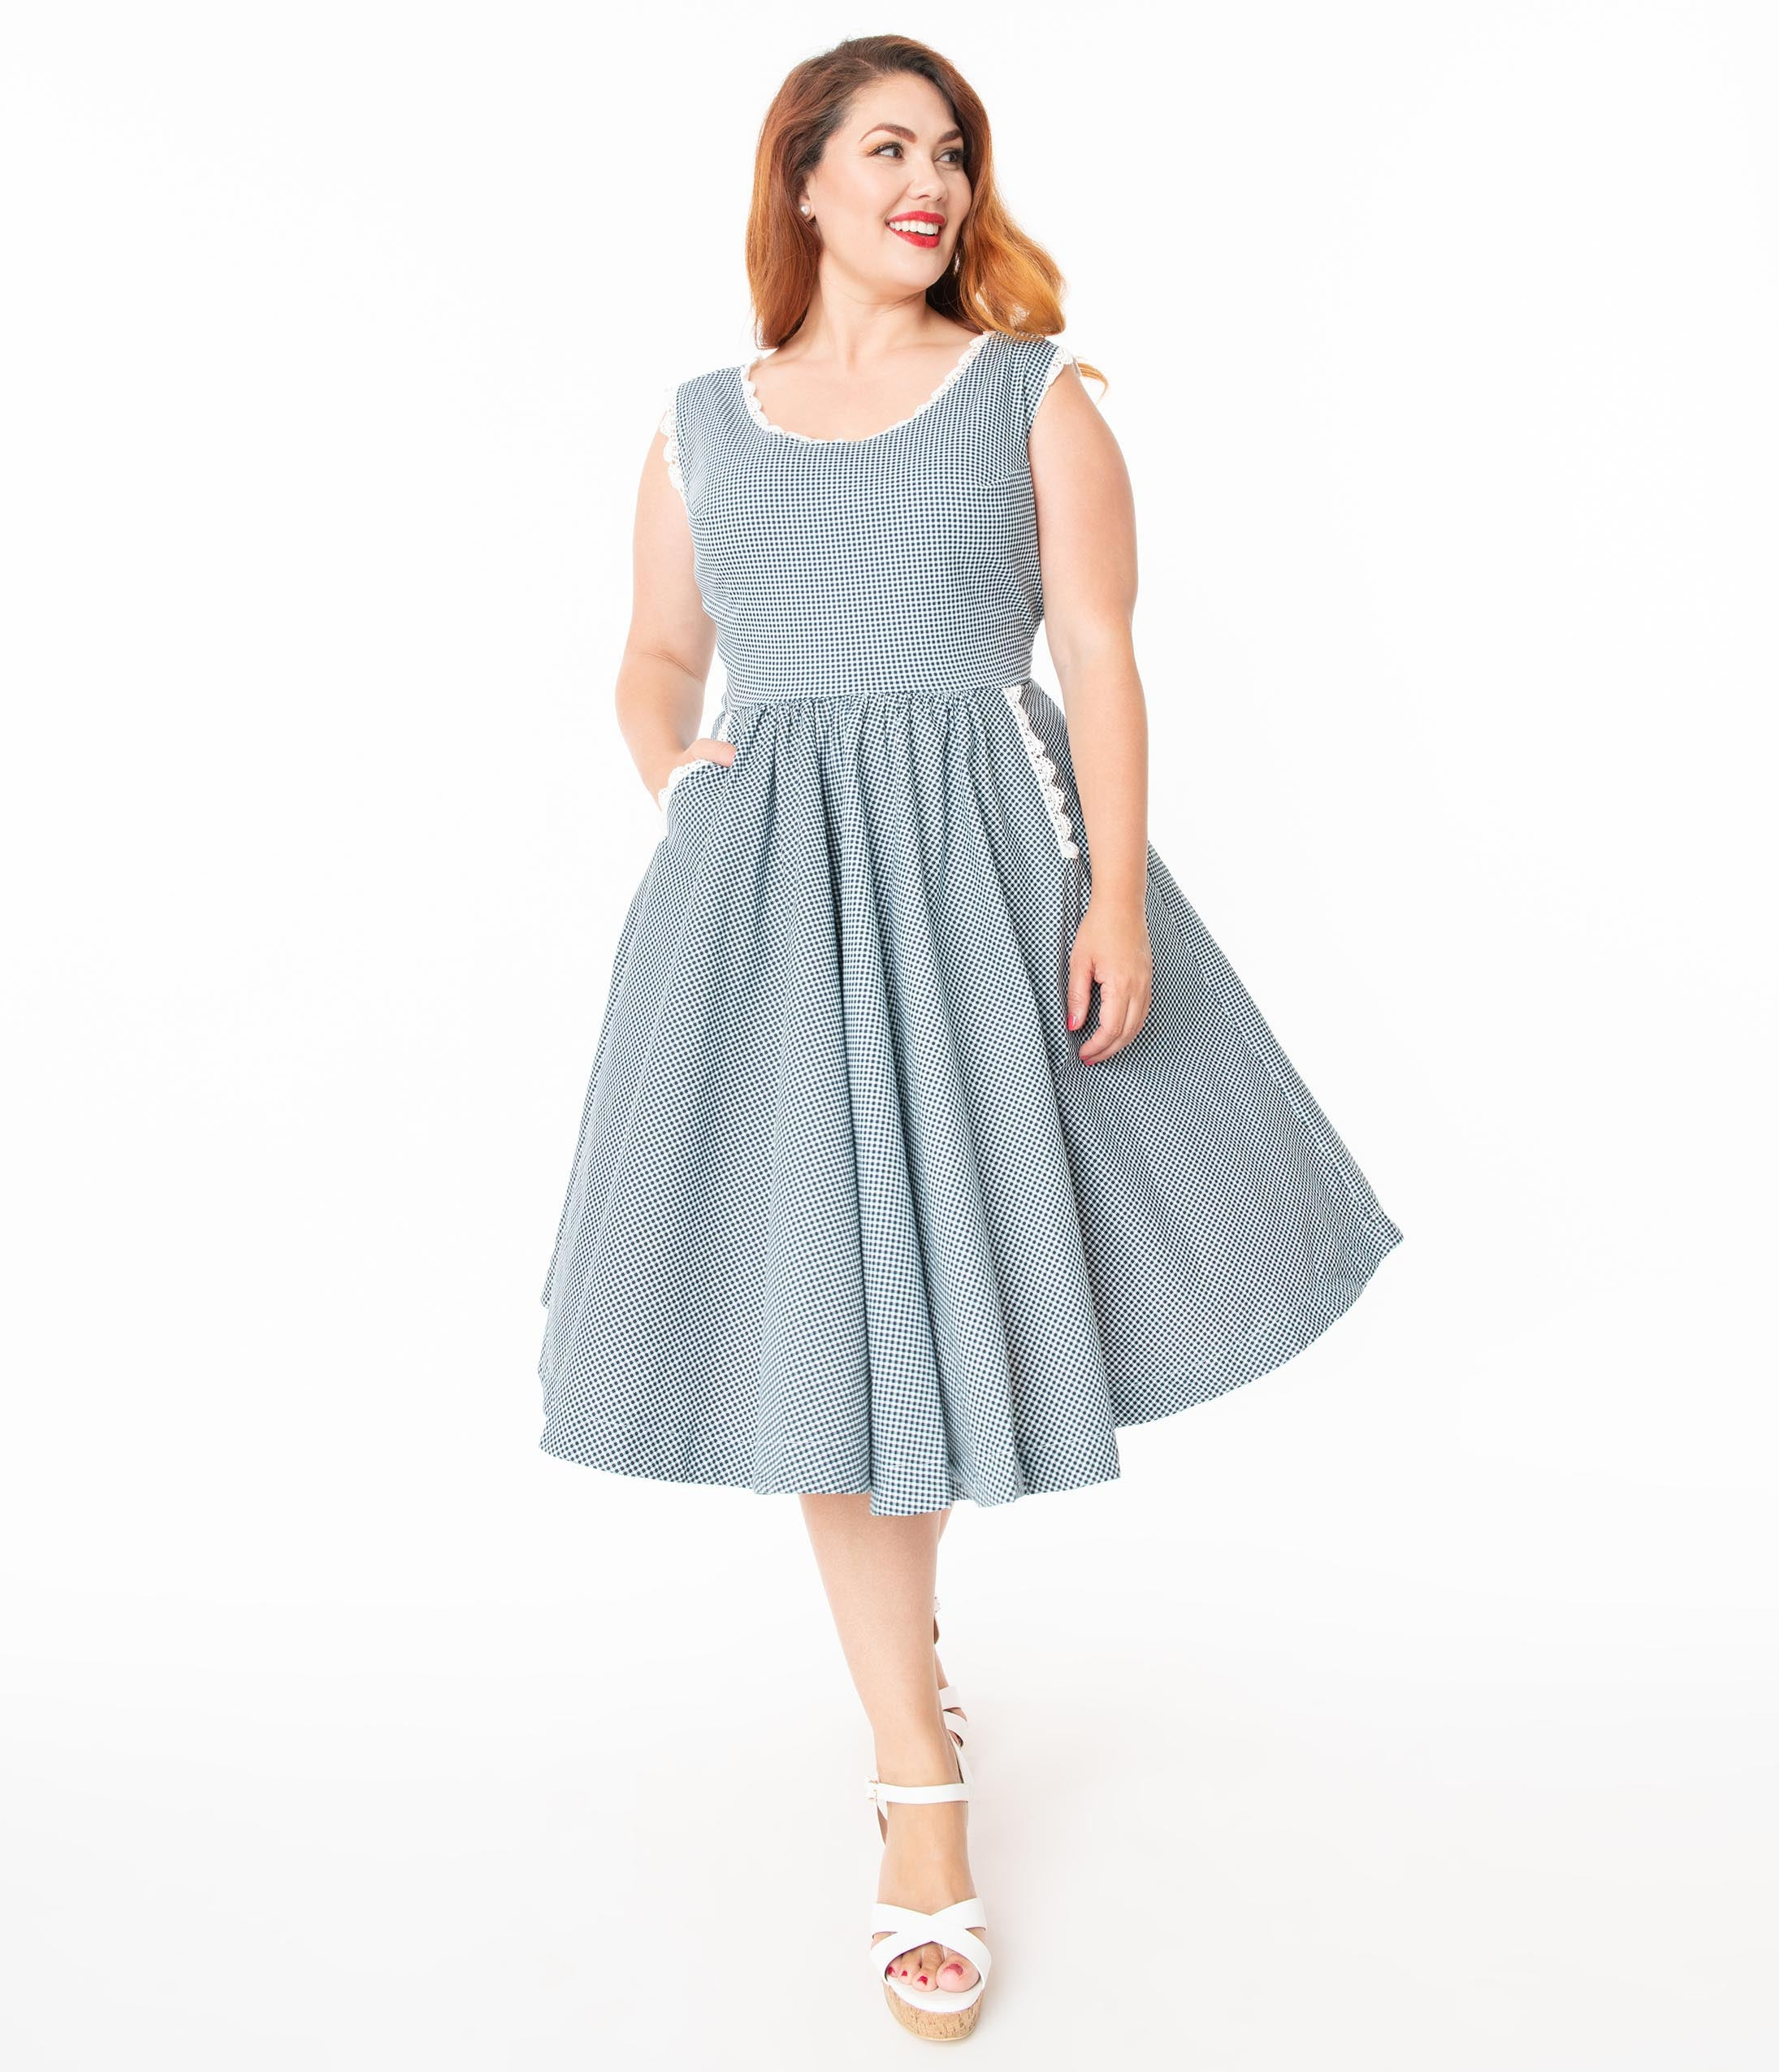 1950s Dresses, 50s Dresses | 1950s Style Dresses Barbie X Unique Vintage Plus Size Navy Gingham Barbie-Q Swing Dress $124.00 AT vintagedancer.com